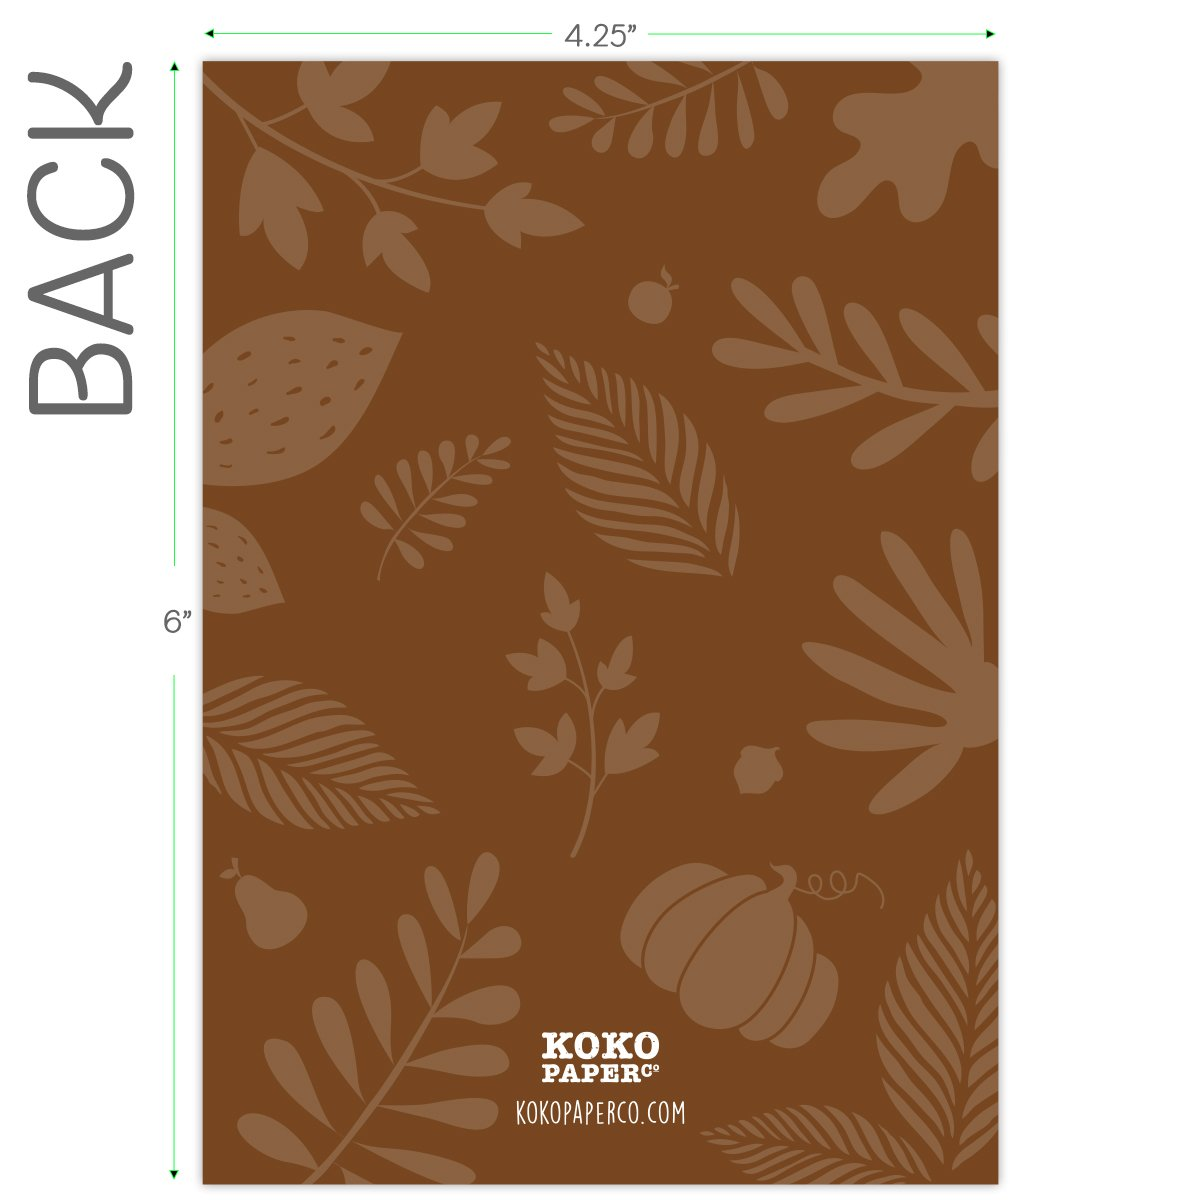 Koko Paper Co Fall Invitations in Autumn Colors with Pumpkin, Fruits and Florals. 25 Fill In Style Cards and Envelopes for Thanksgiving, Harvest Party, Birthday, Engagement, Bridal and Baby Shower, or by Koko Paper Co (Image #6)